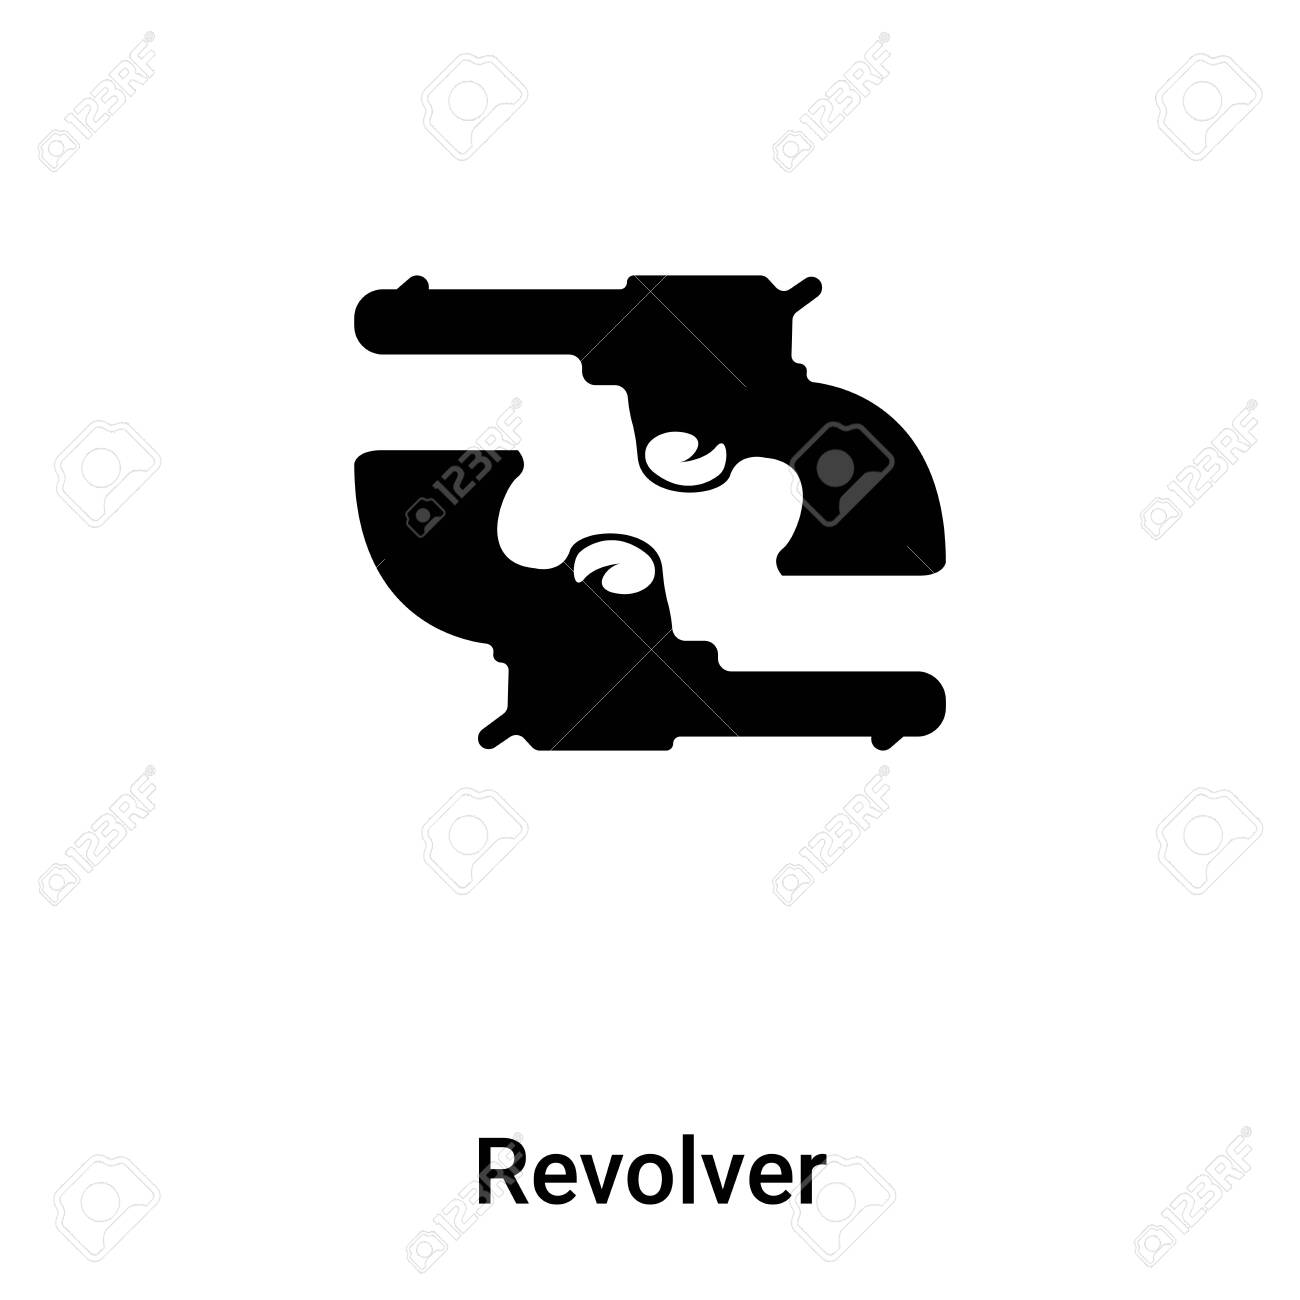 Revolver icon vector isolated on white background, concept of Revolver sign on transparent background, filled black symbol - 121530572